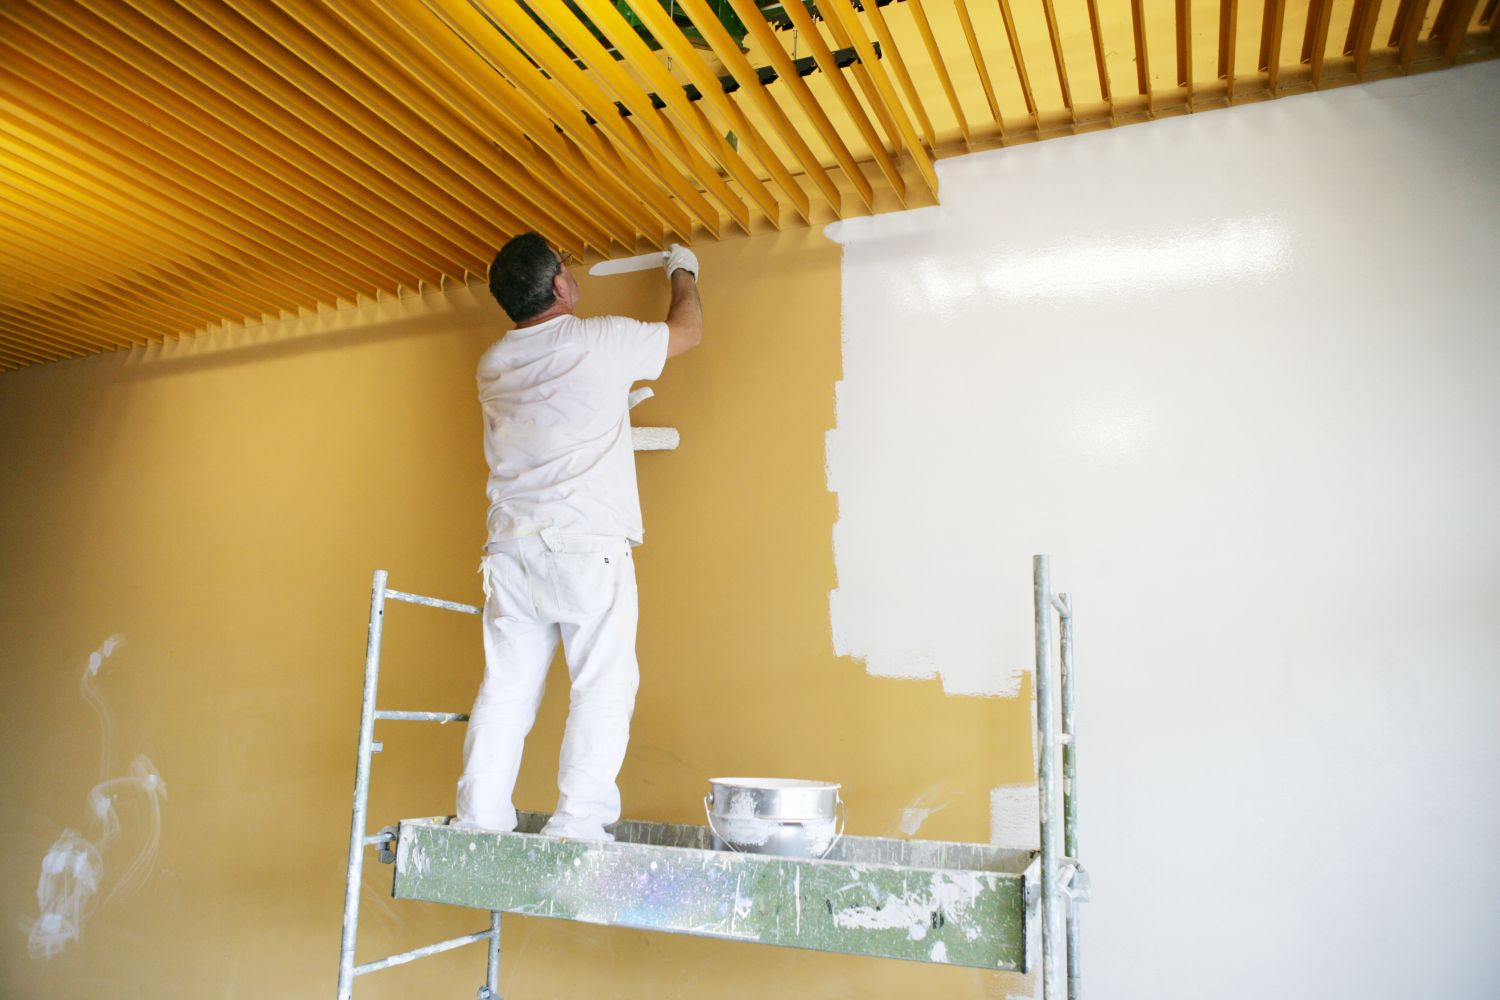 California Popcorn Removal -popcorn removal services, residential & commercial popcorn ceiling removal-7-We offer professional popcorn removal services, residential & commercial popcorn ceiling removal, Knockdown Texture, Orange Peel Ceilings, Smooth Ceiling Finish, and Drywall Repair